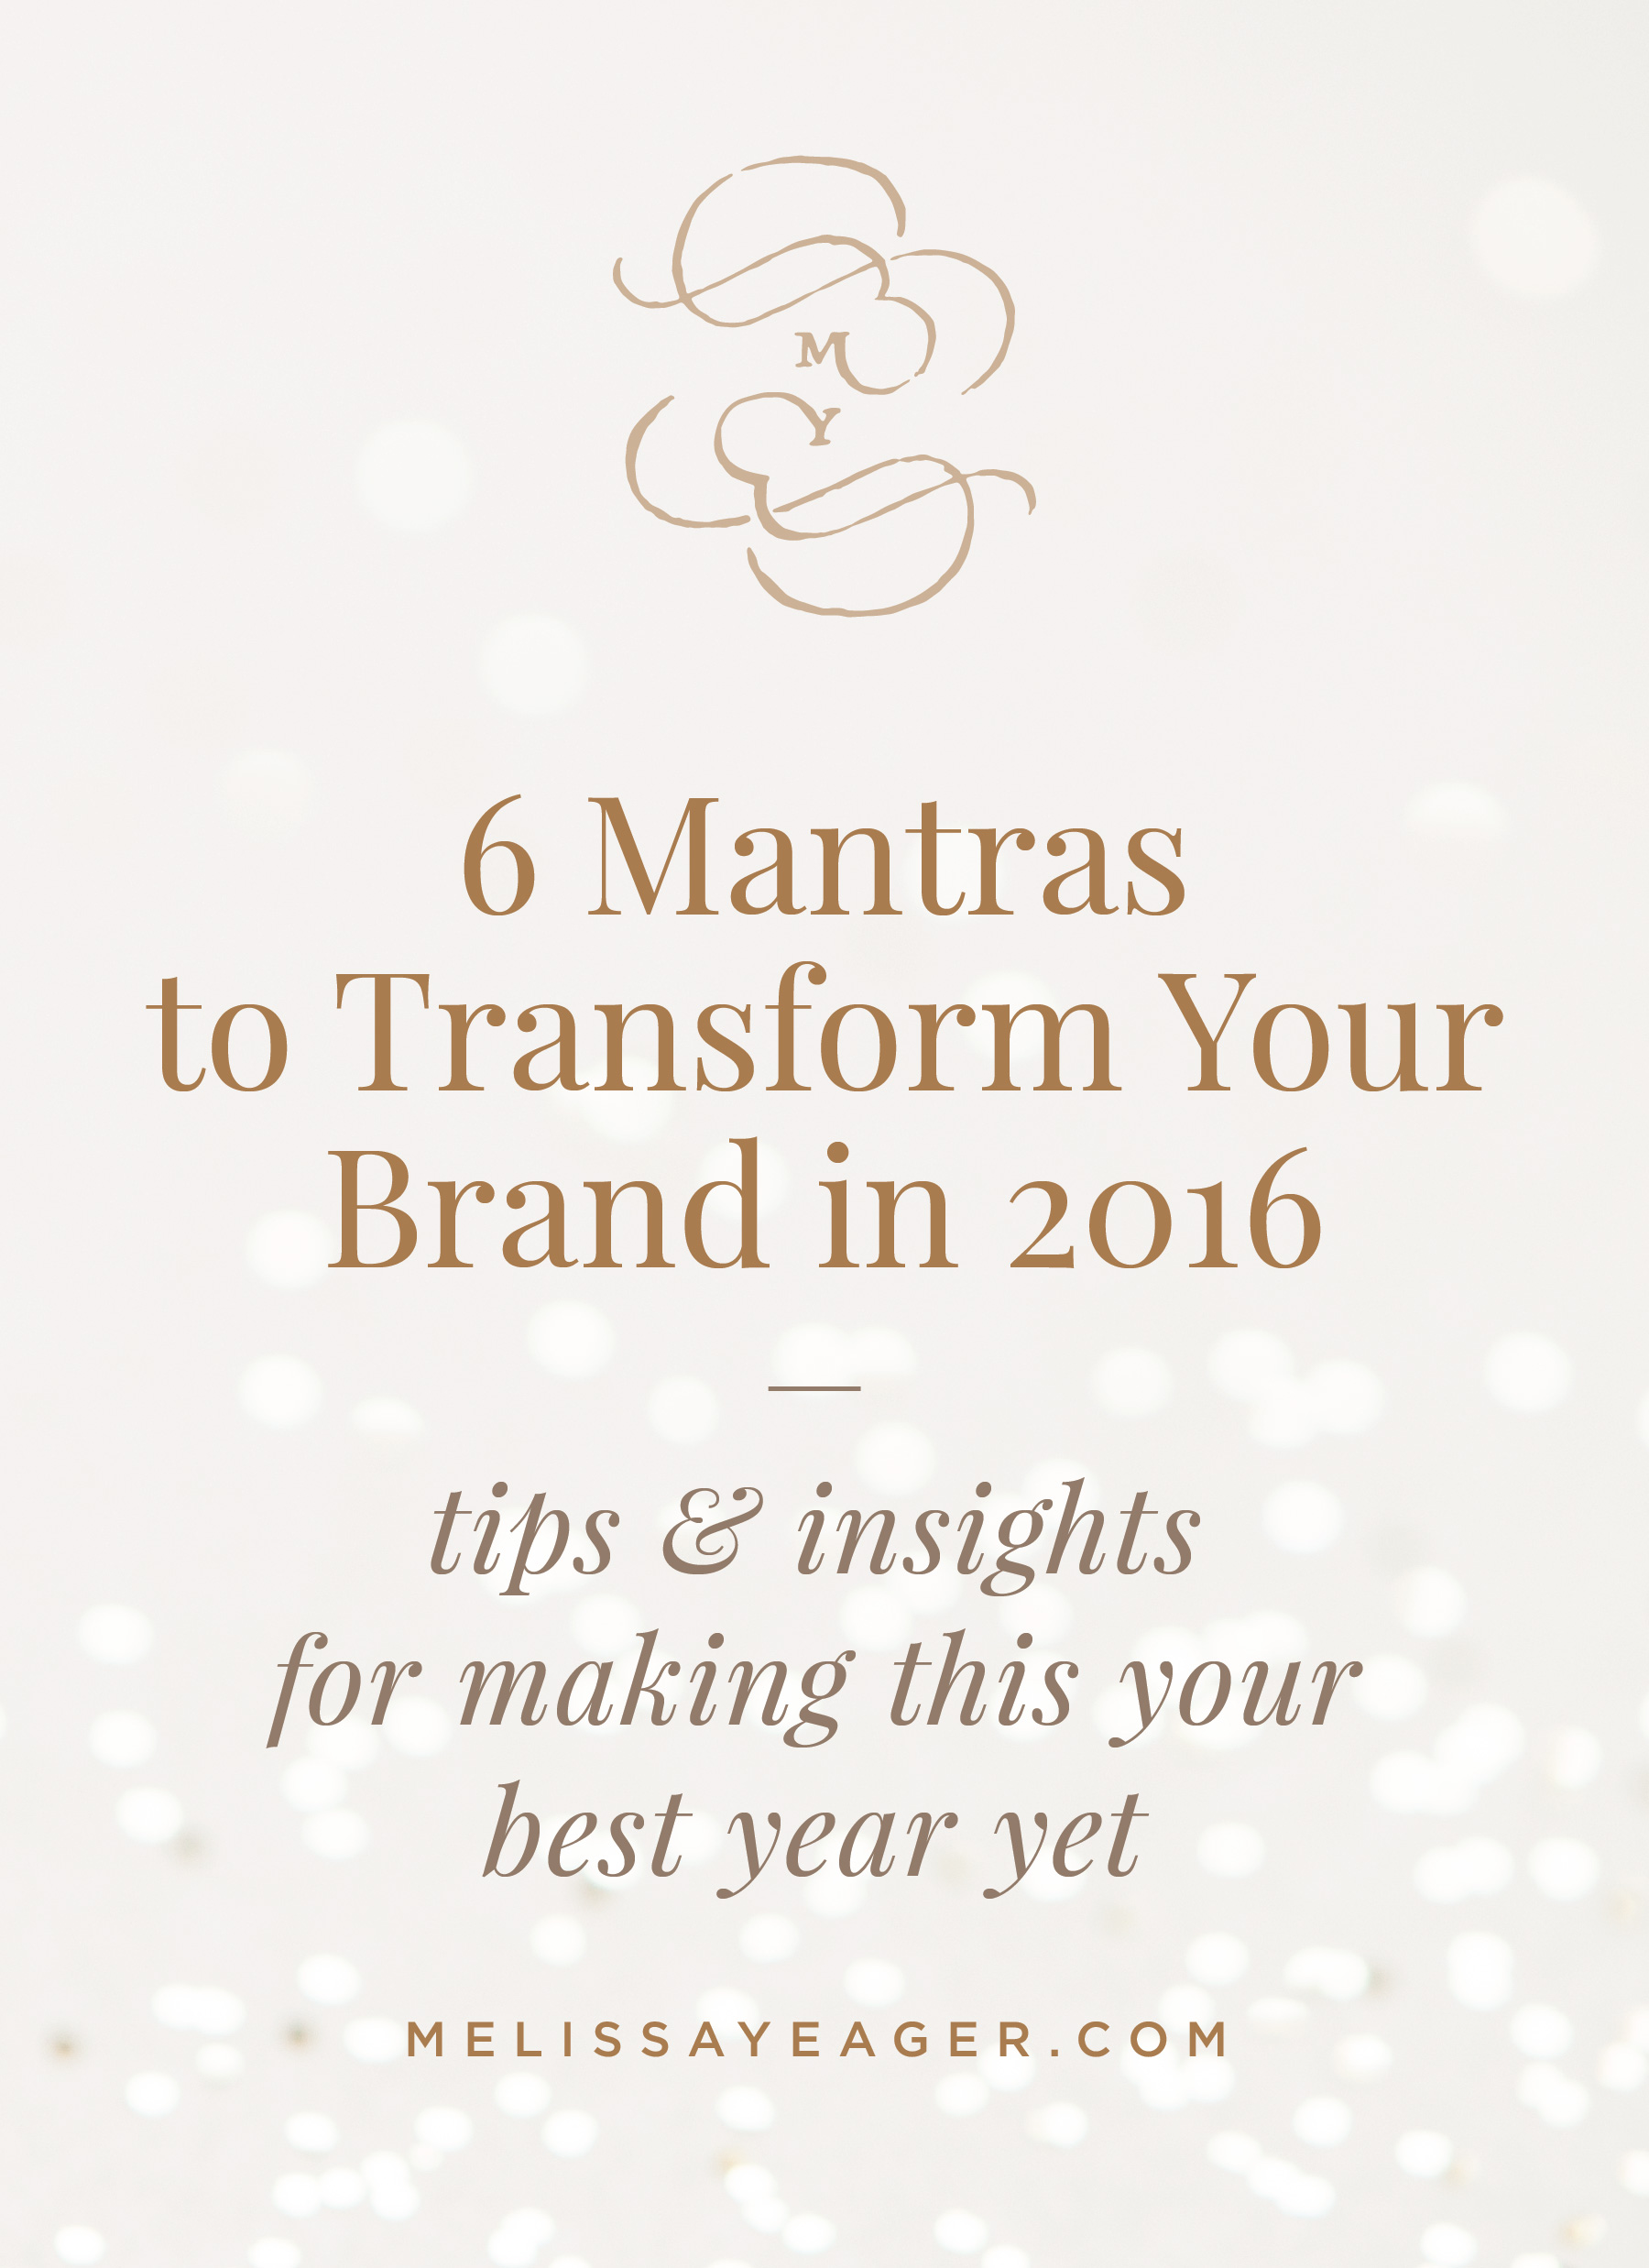 6 Mantras to Transform Your Brand in 2016: tips & insights for making this your best year yet